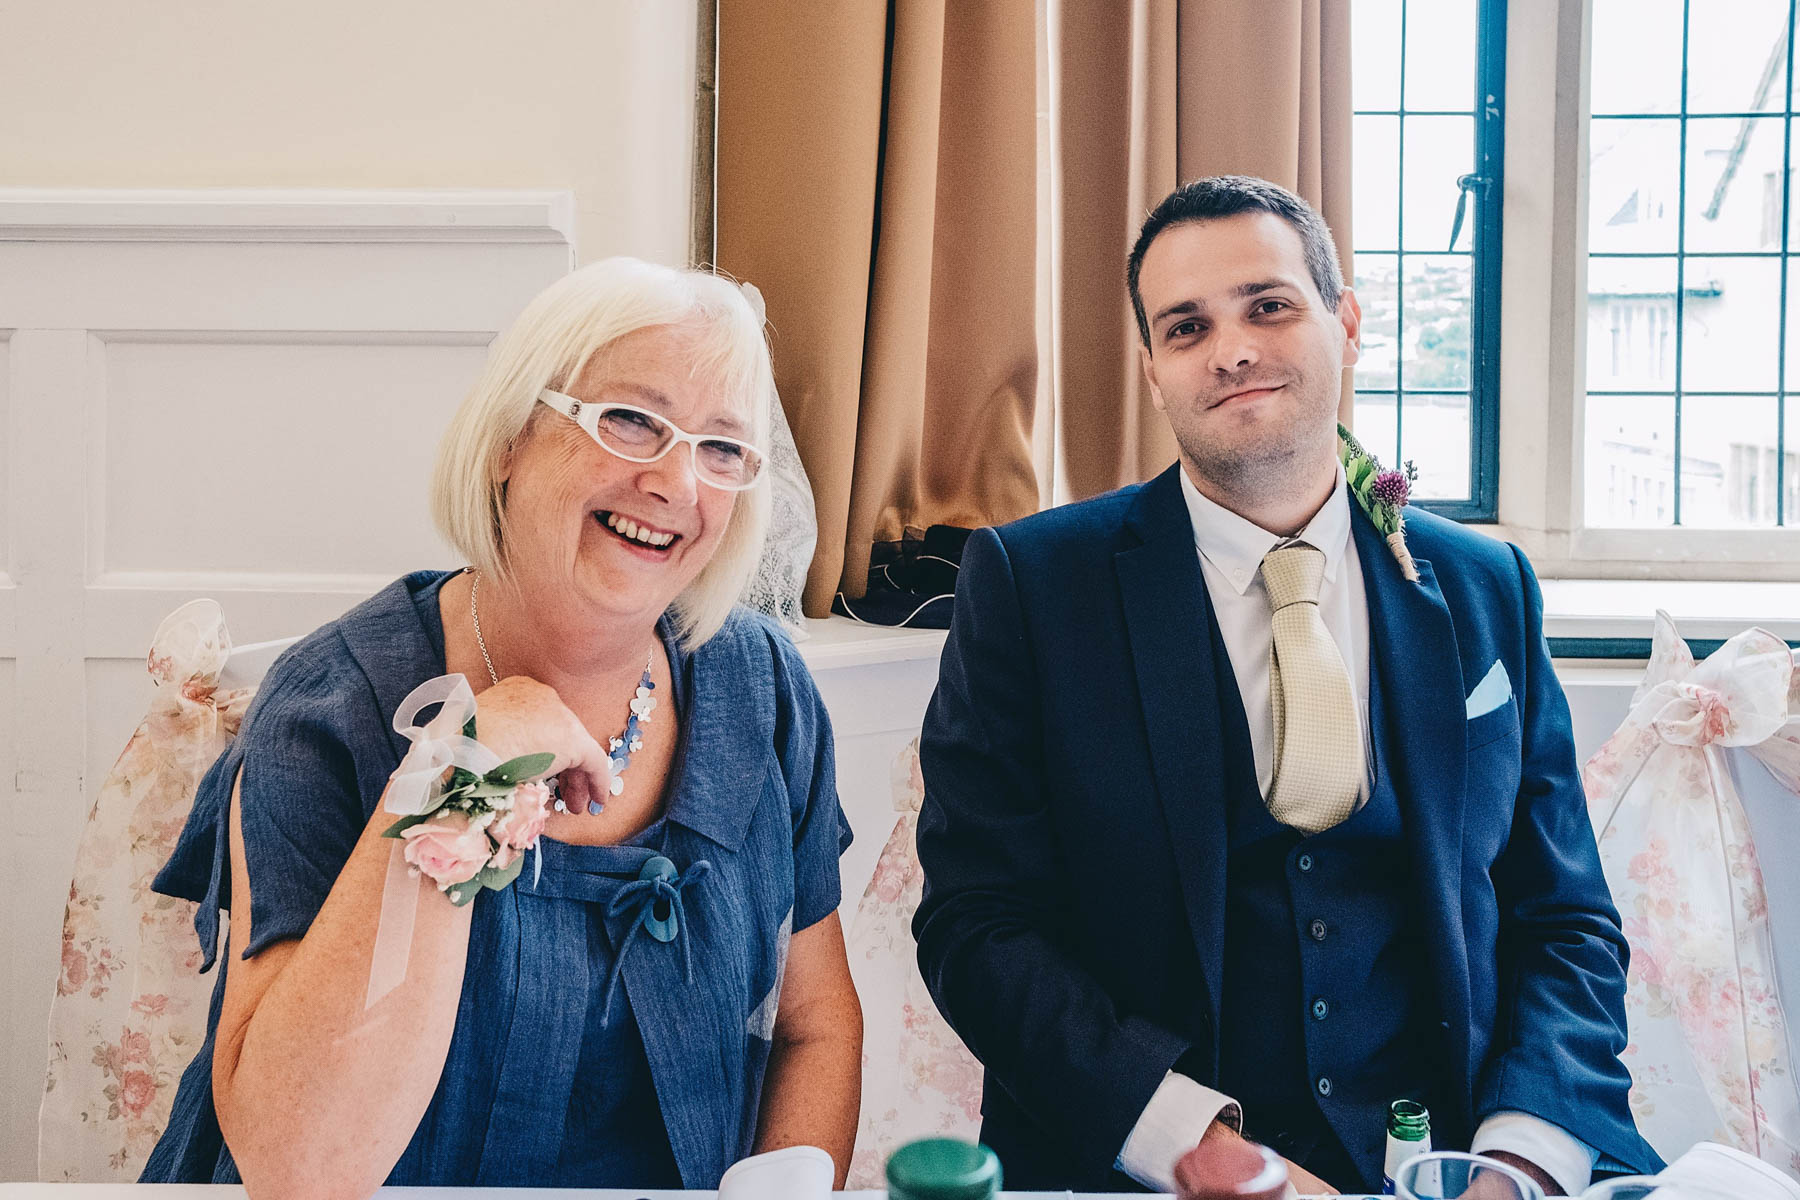 Brother of the Bride smiles with relative during wedding